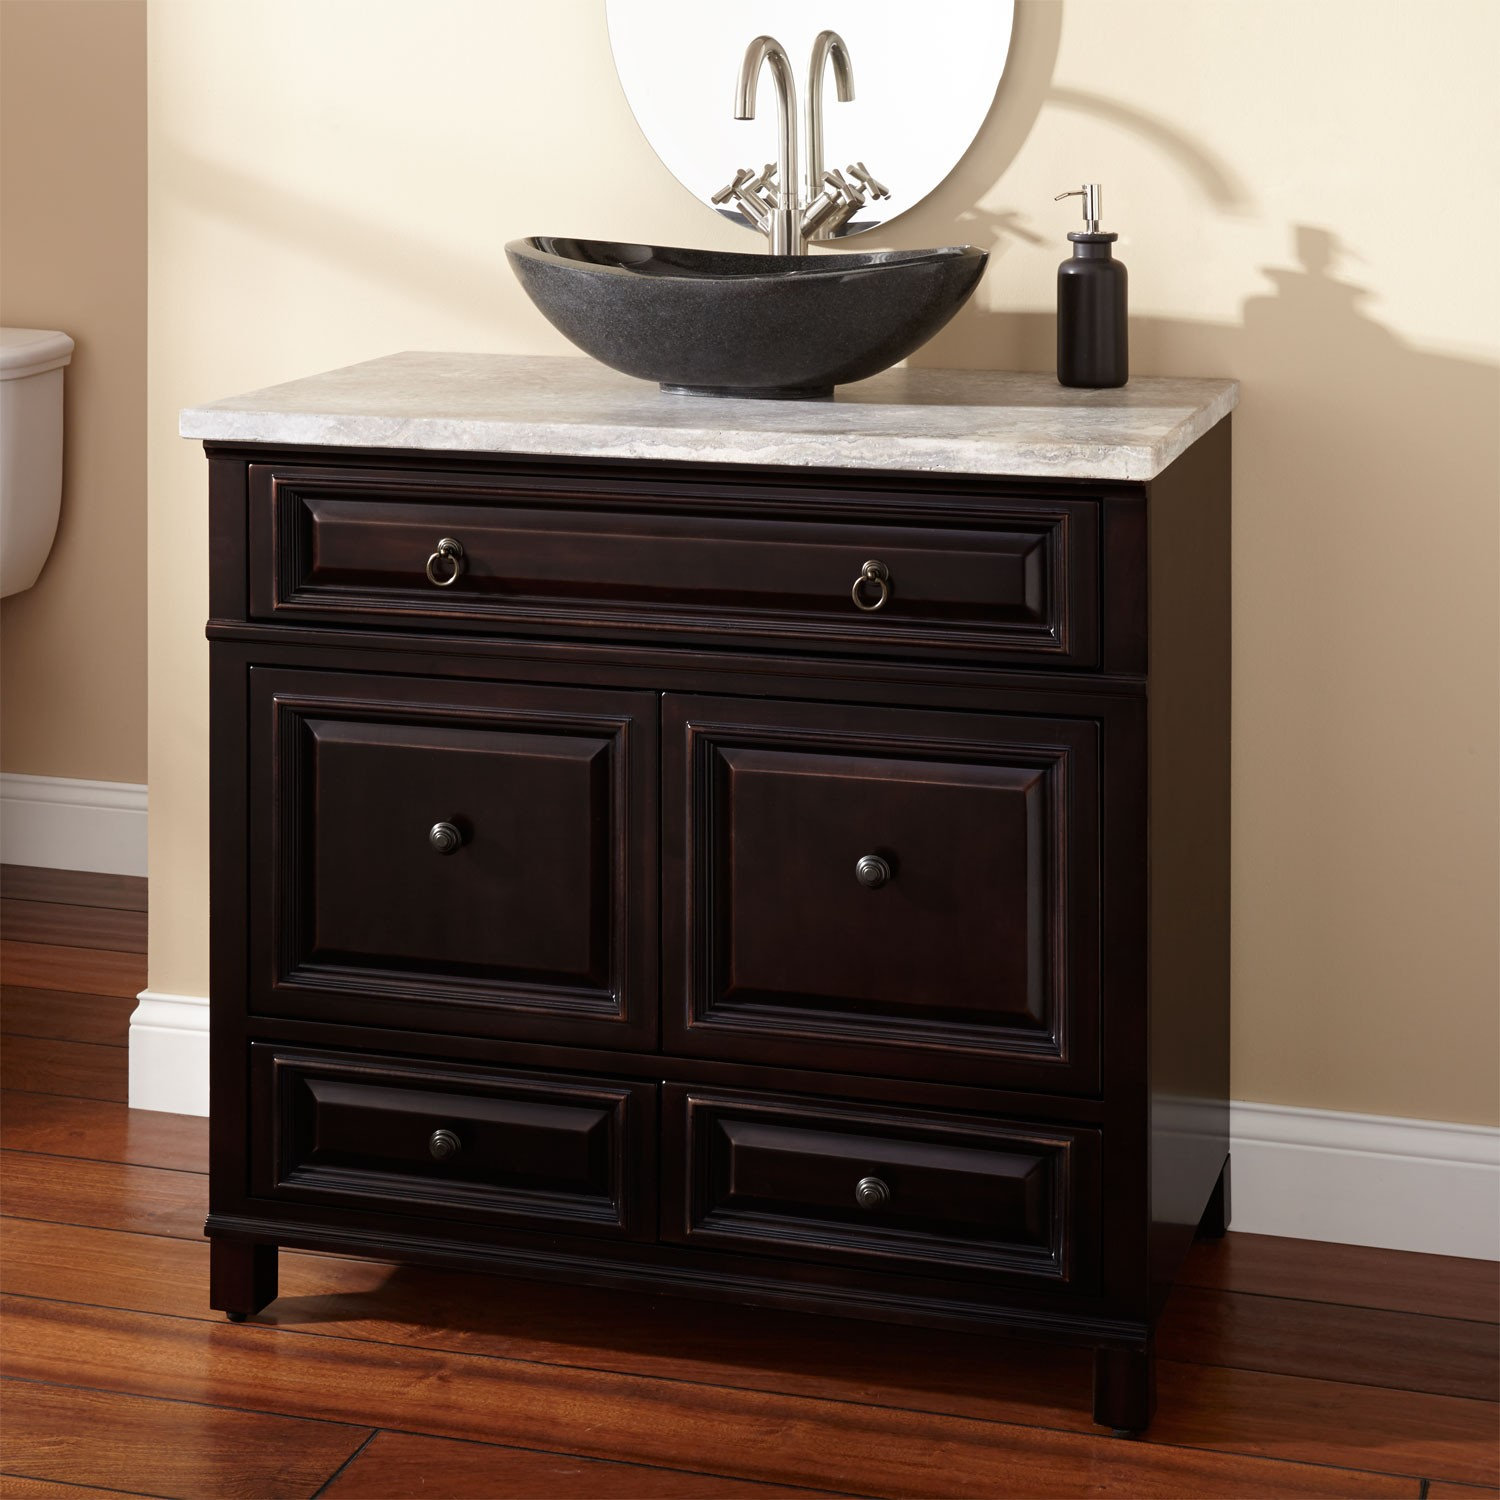 Utility Sink Lowes | Menards Sinks | Menards Kitchen Sink